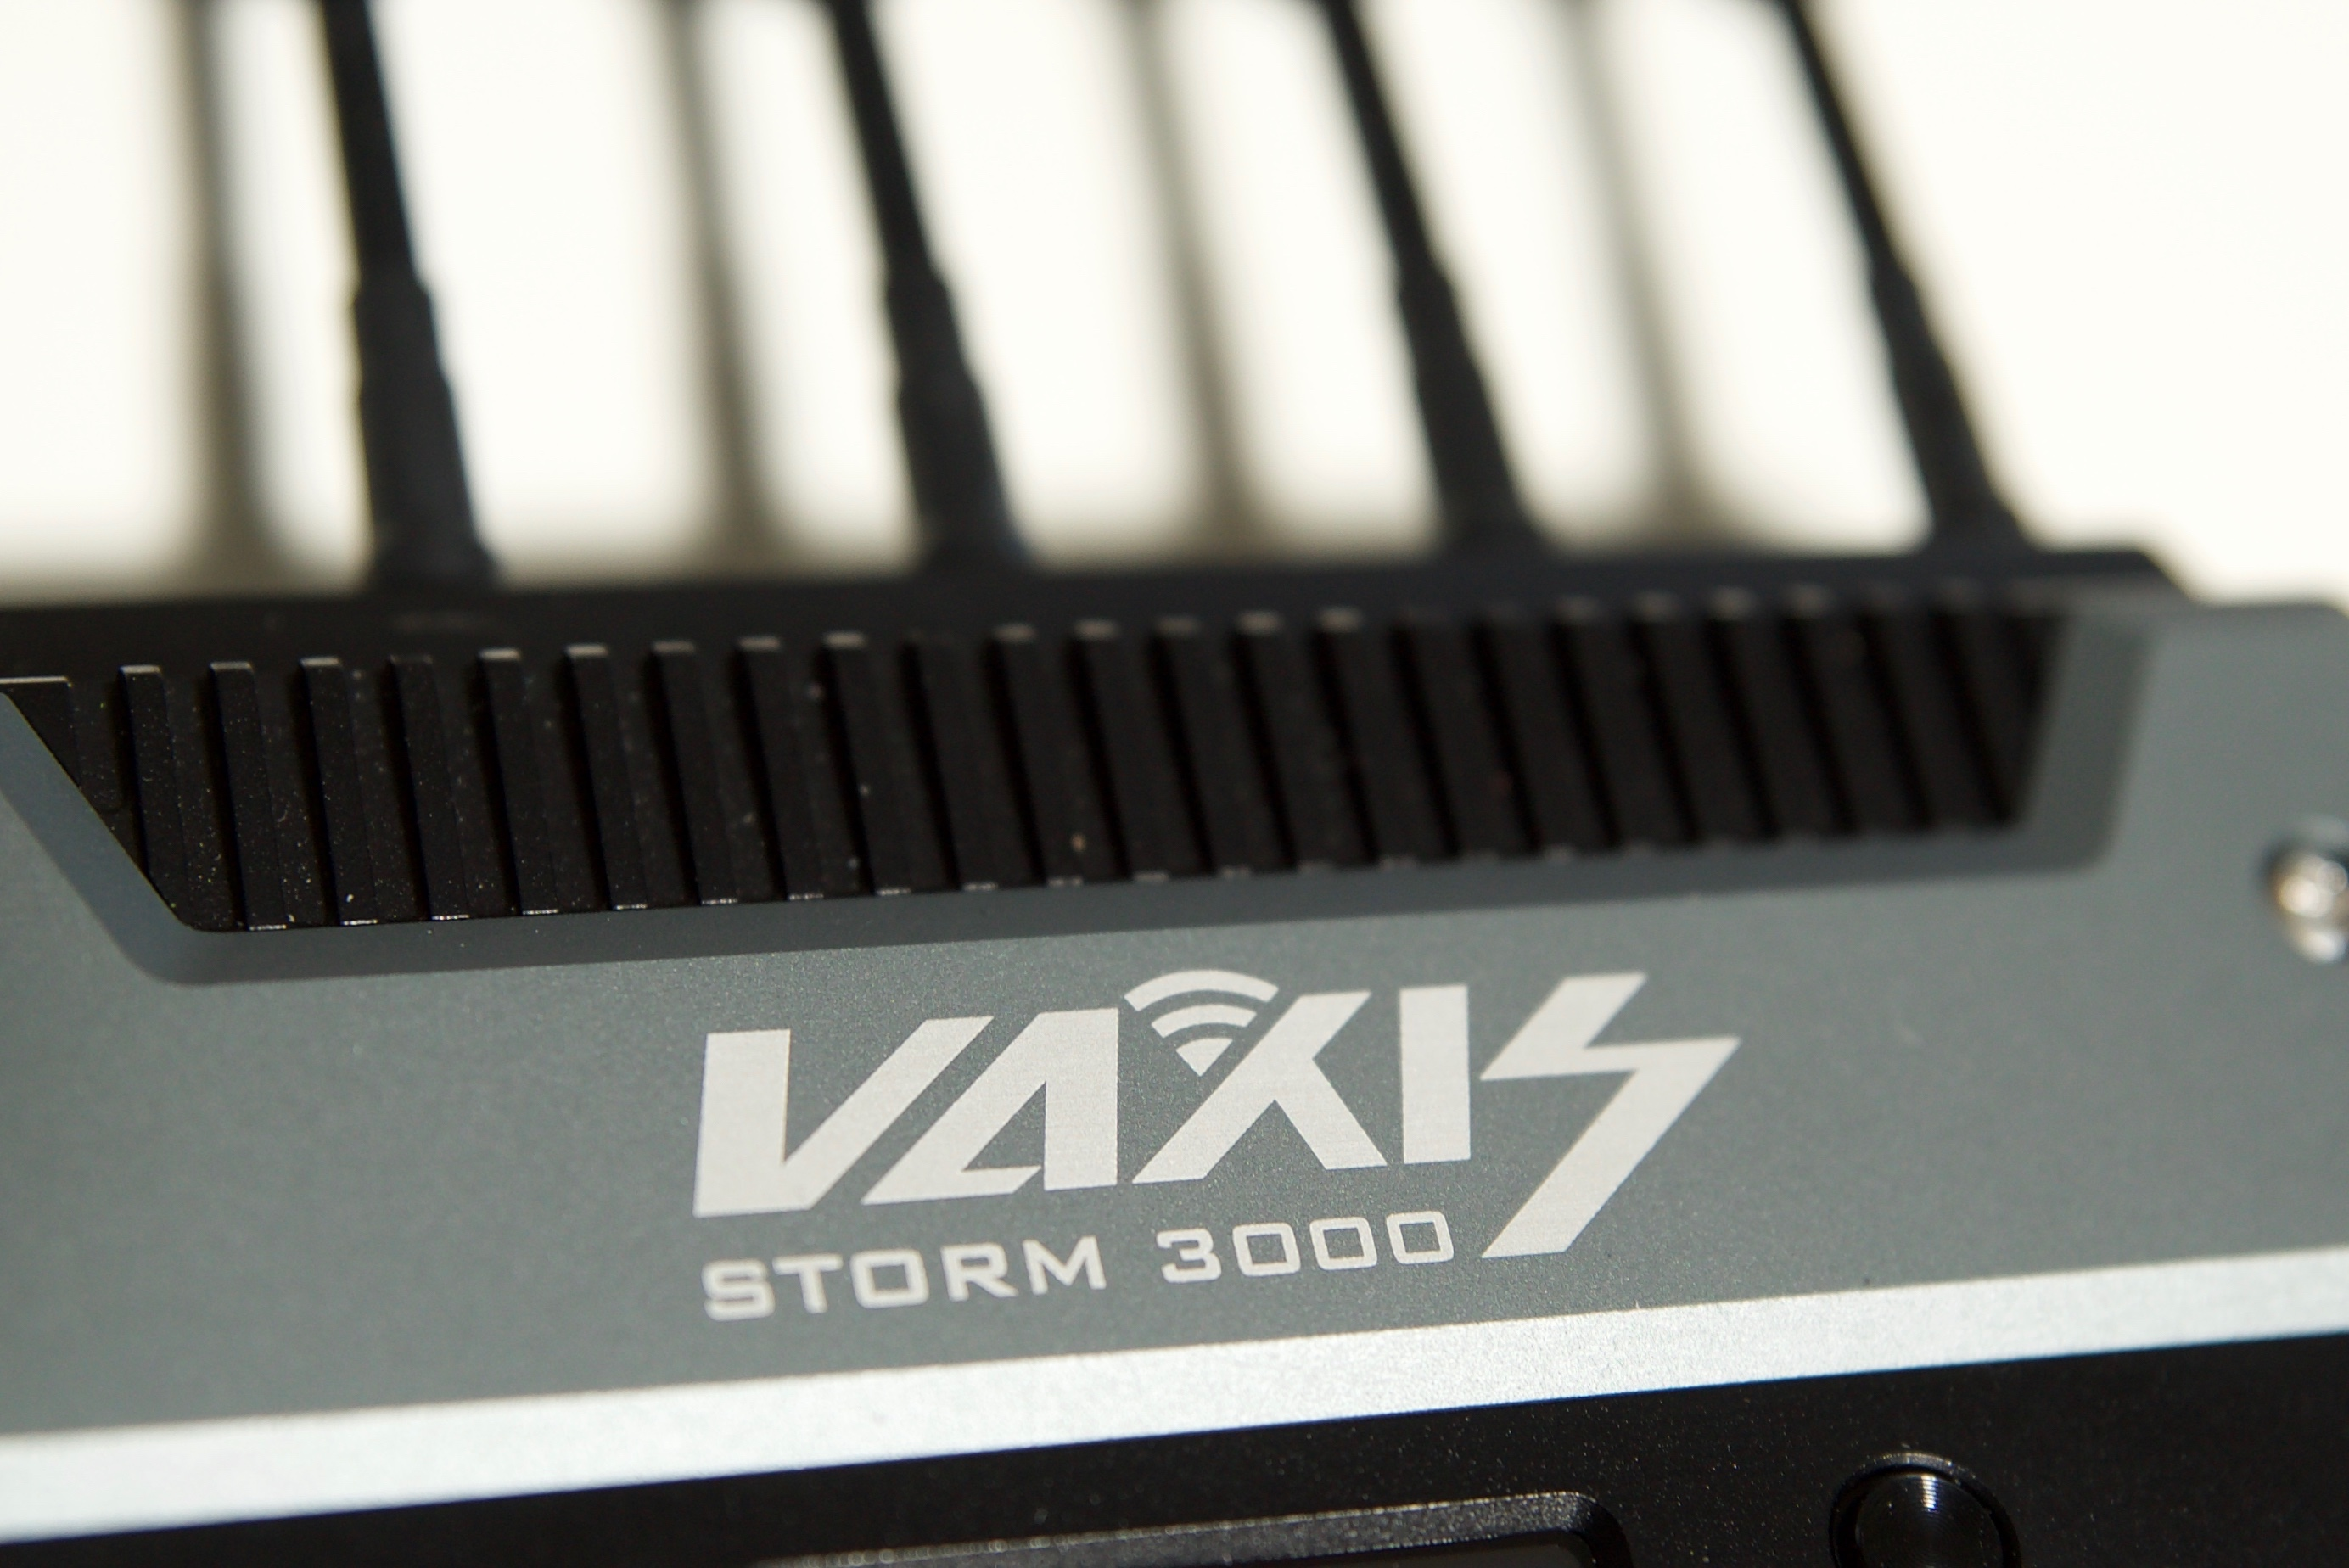 Vaxis Storm 3000 features a metal construction